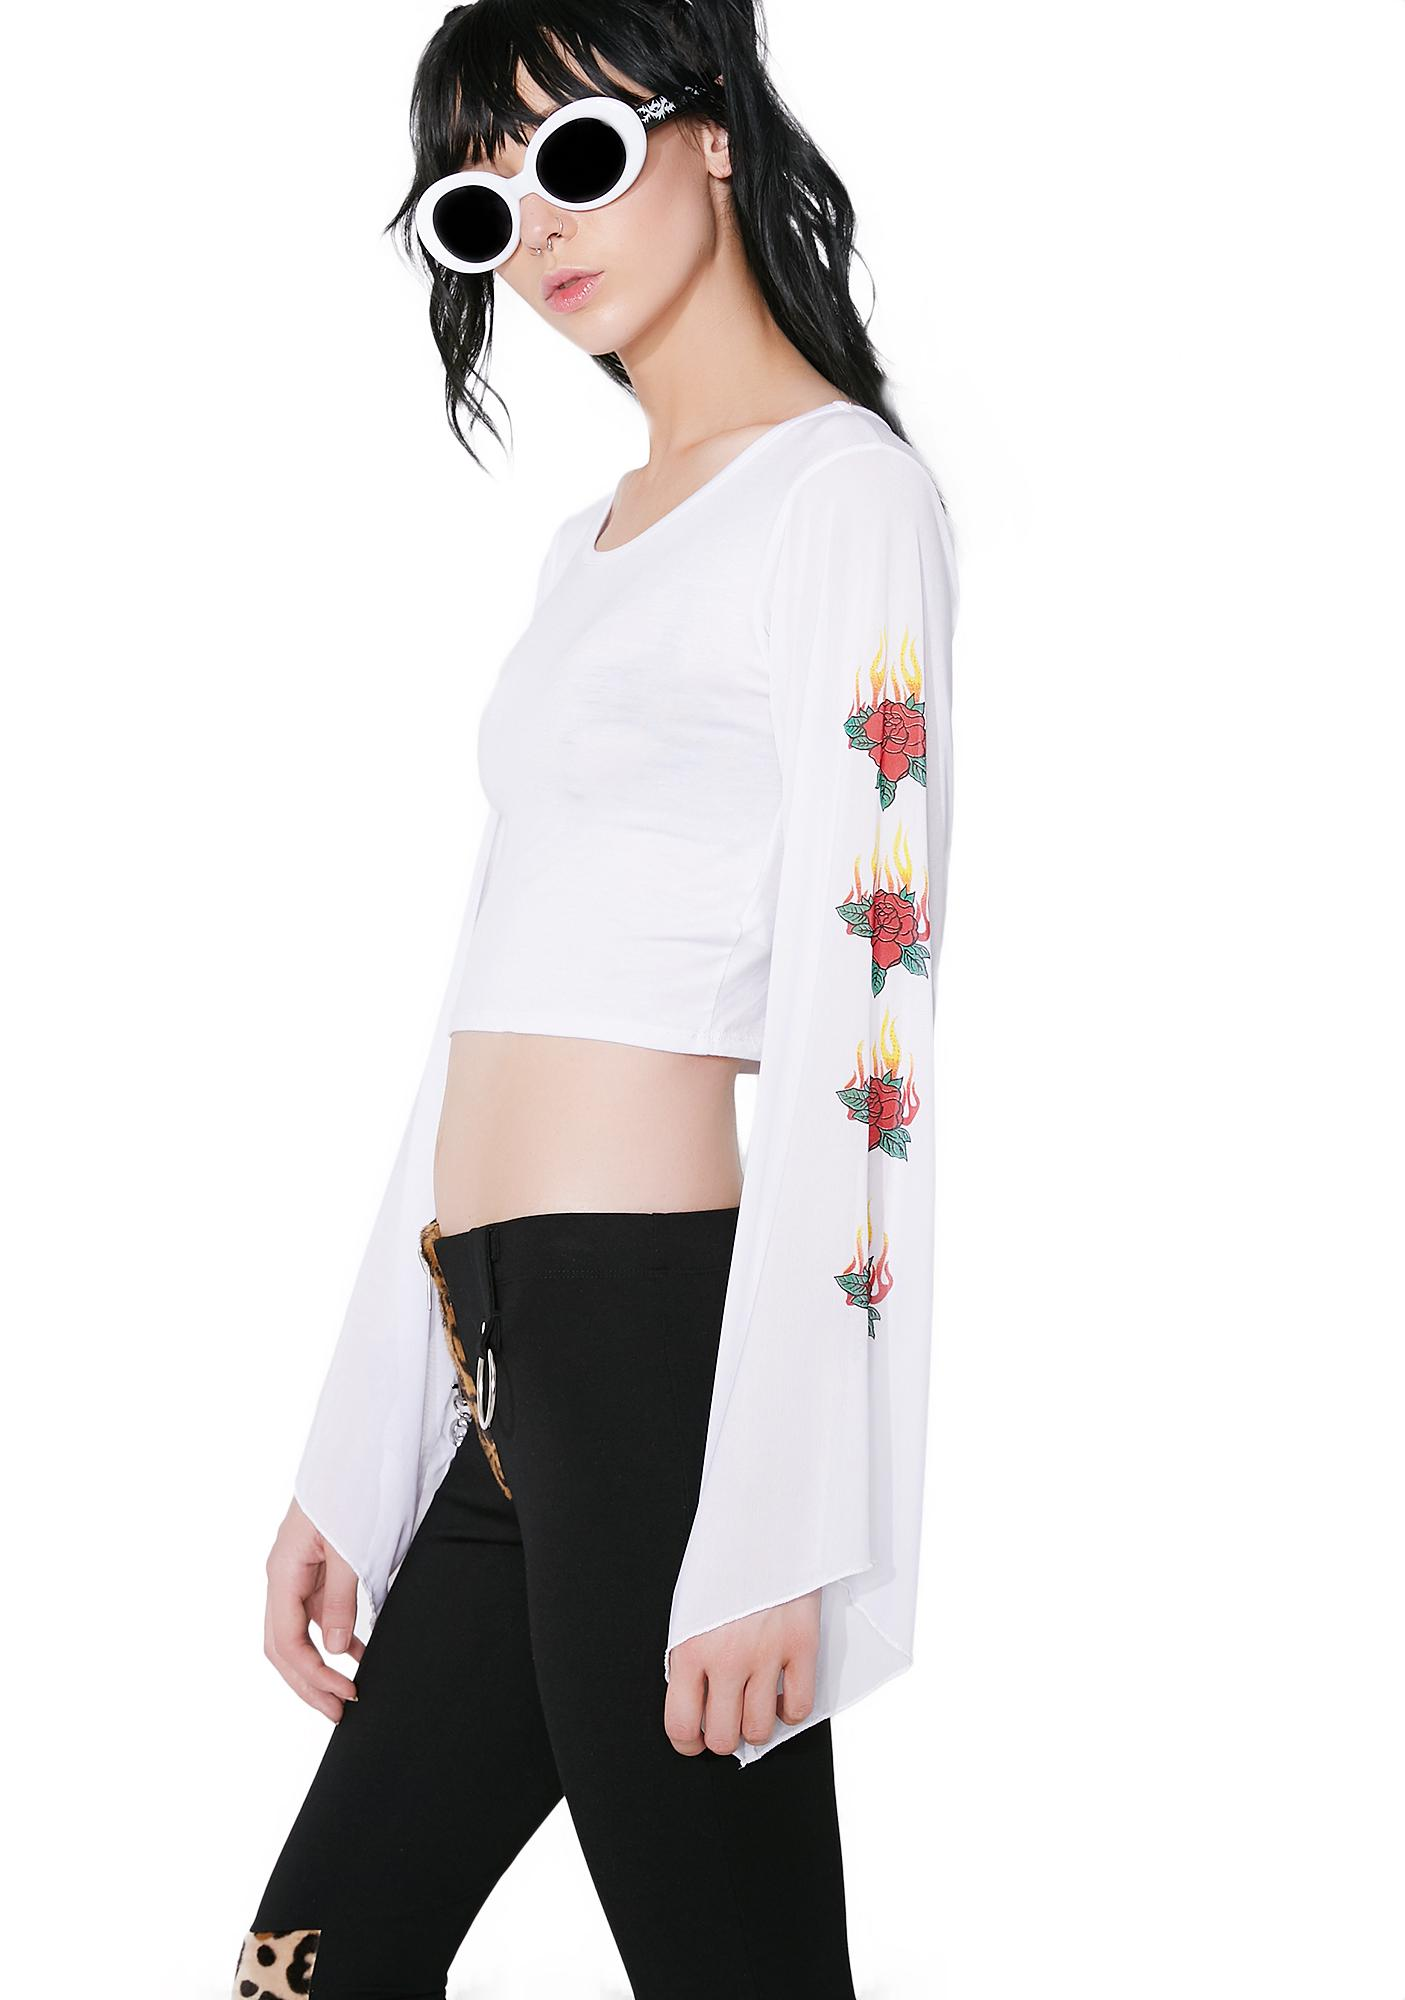 Light My Fire Rose Crop Top